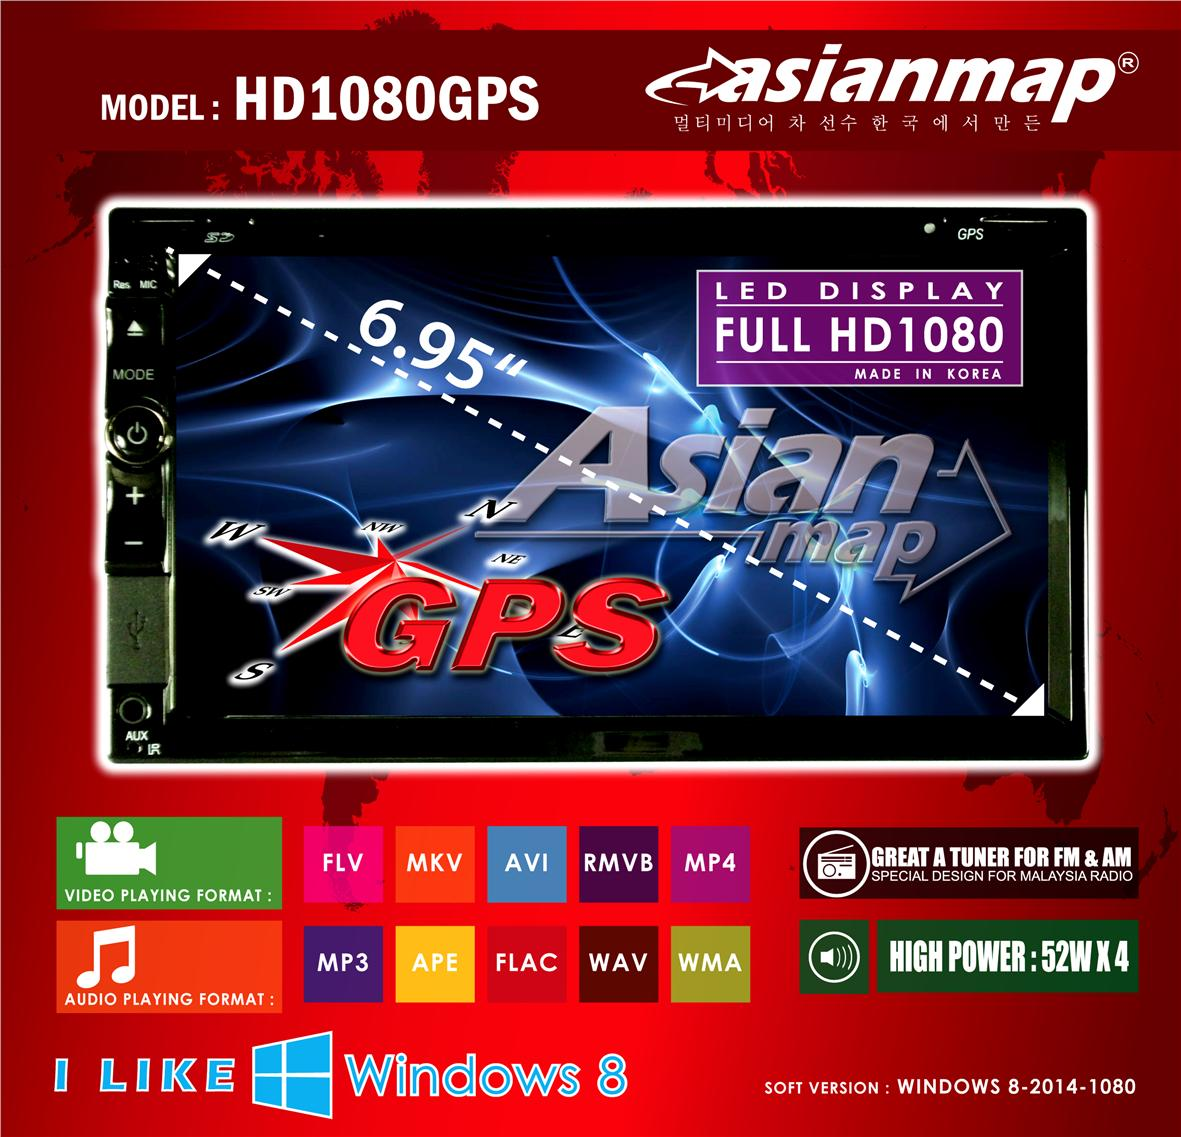 ASIAN MAP 6.95' Universal Car DVD Double DinPlayer with GPS